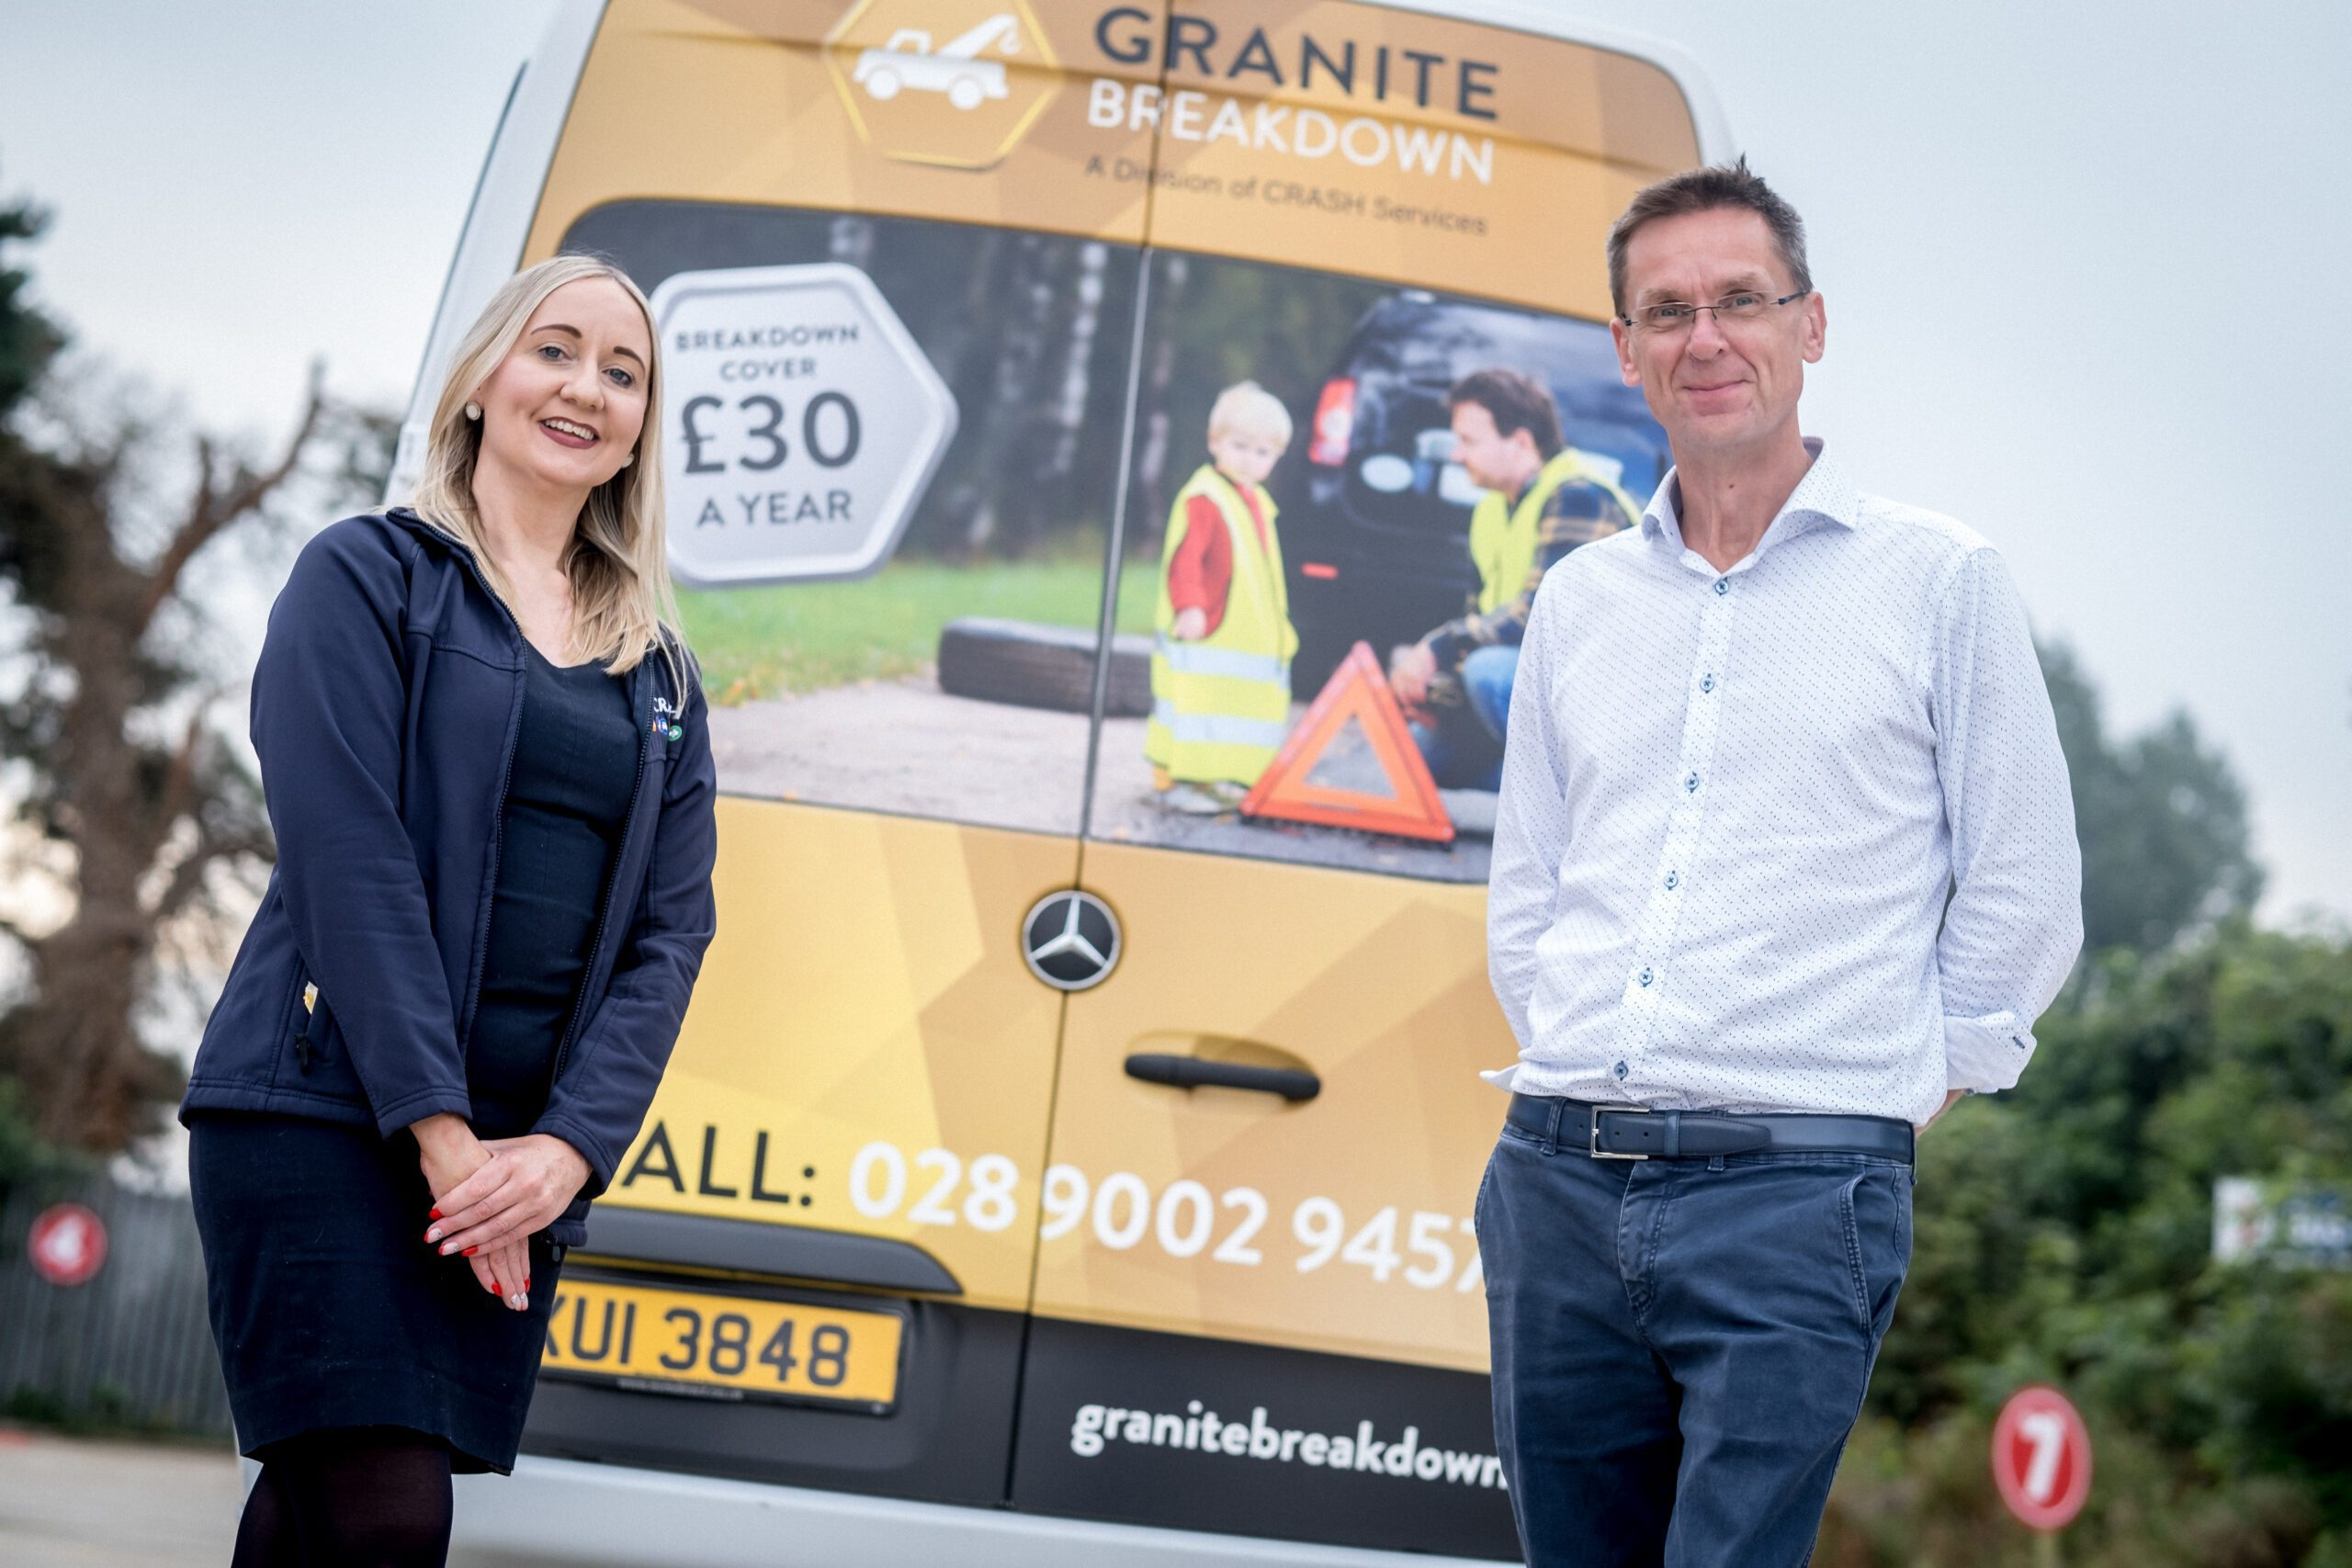 Granite Breakdown team up with Airpoter bus company in Derry